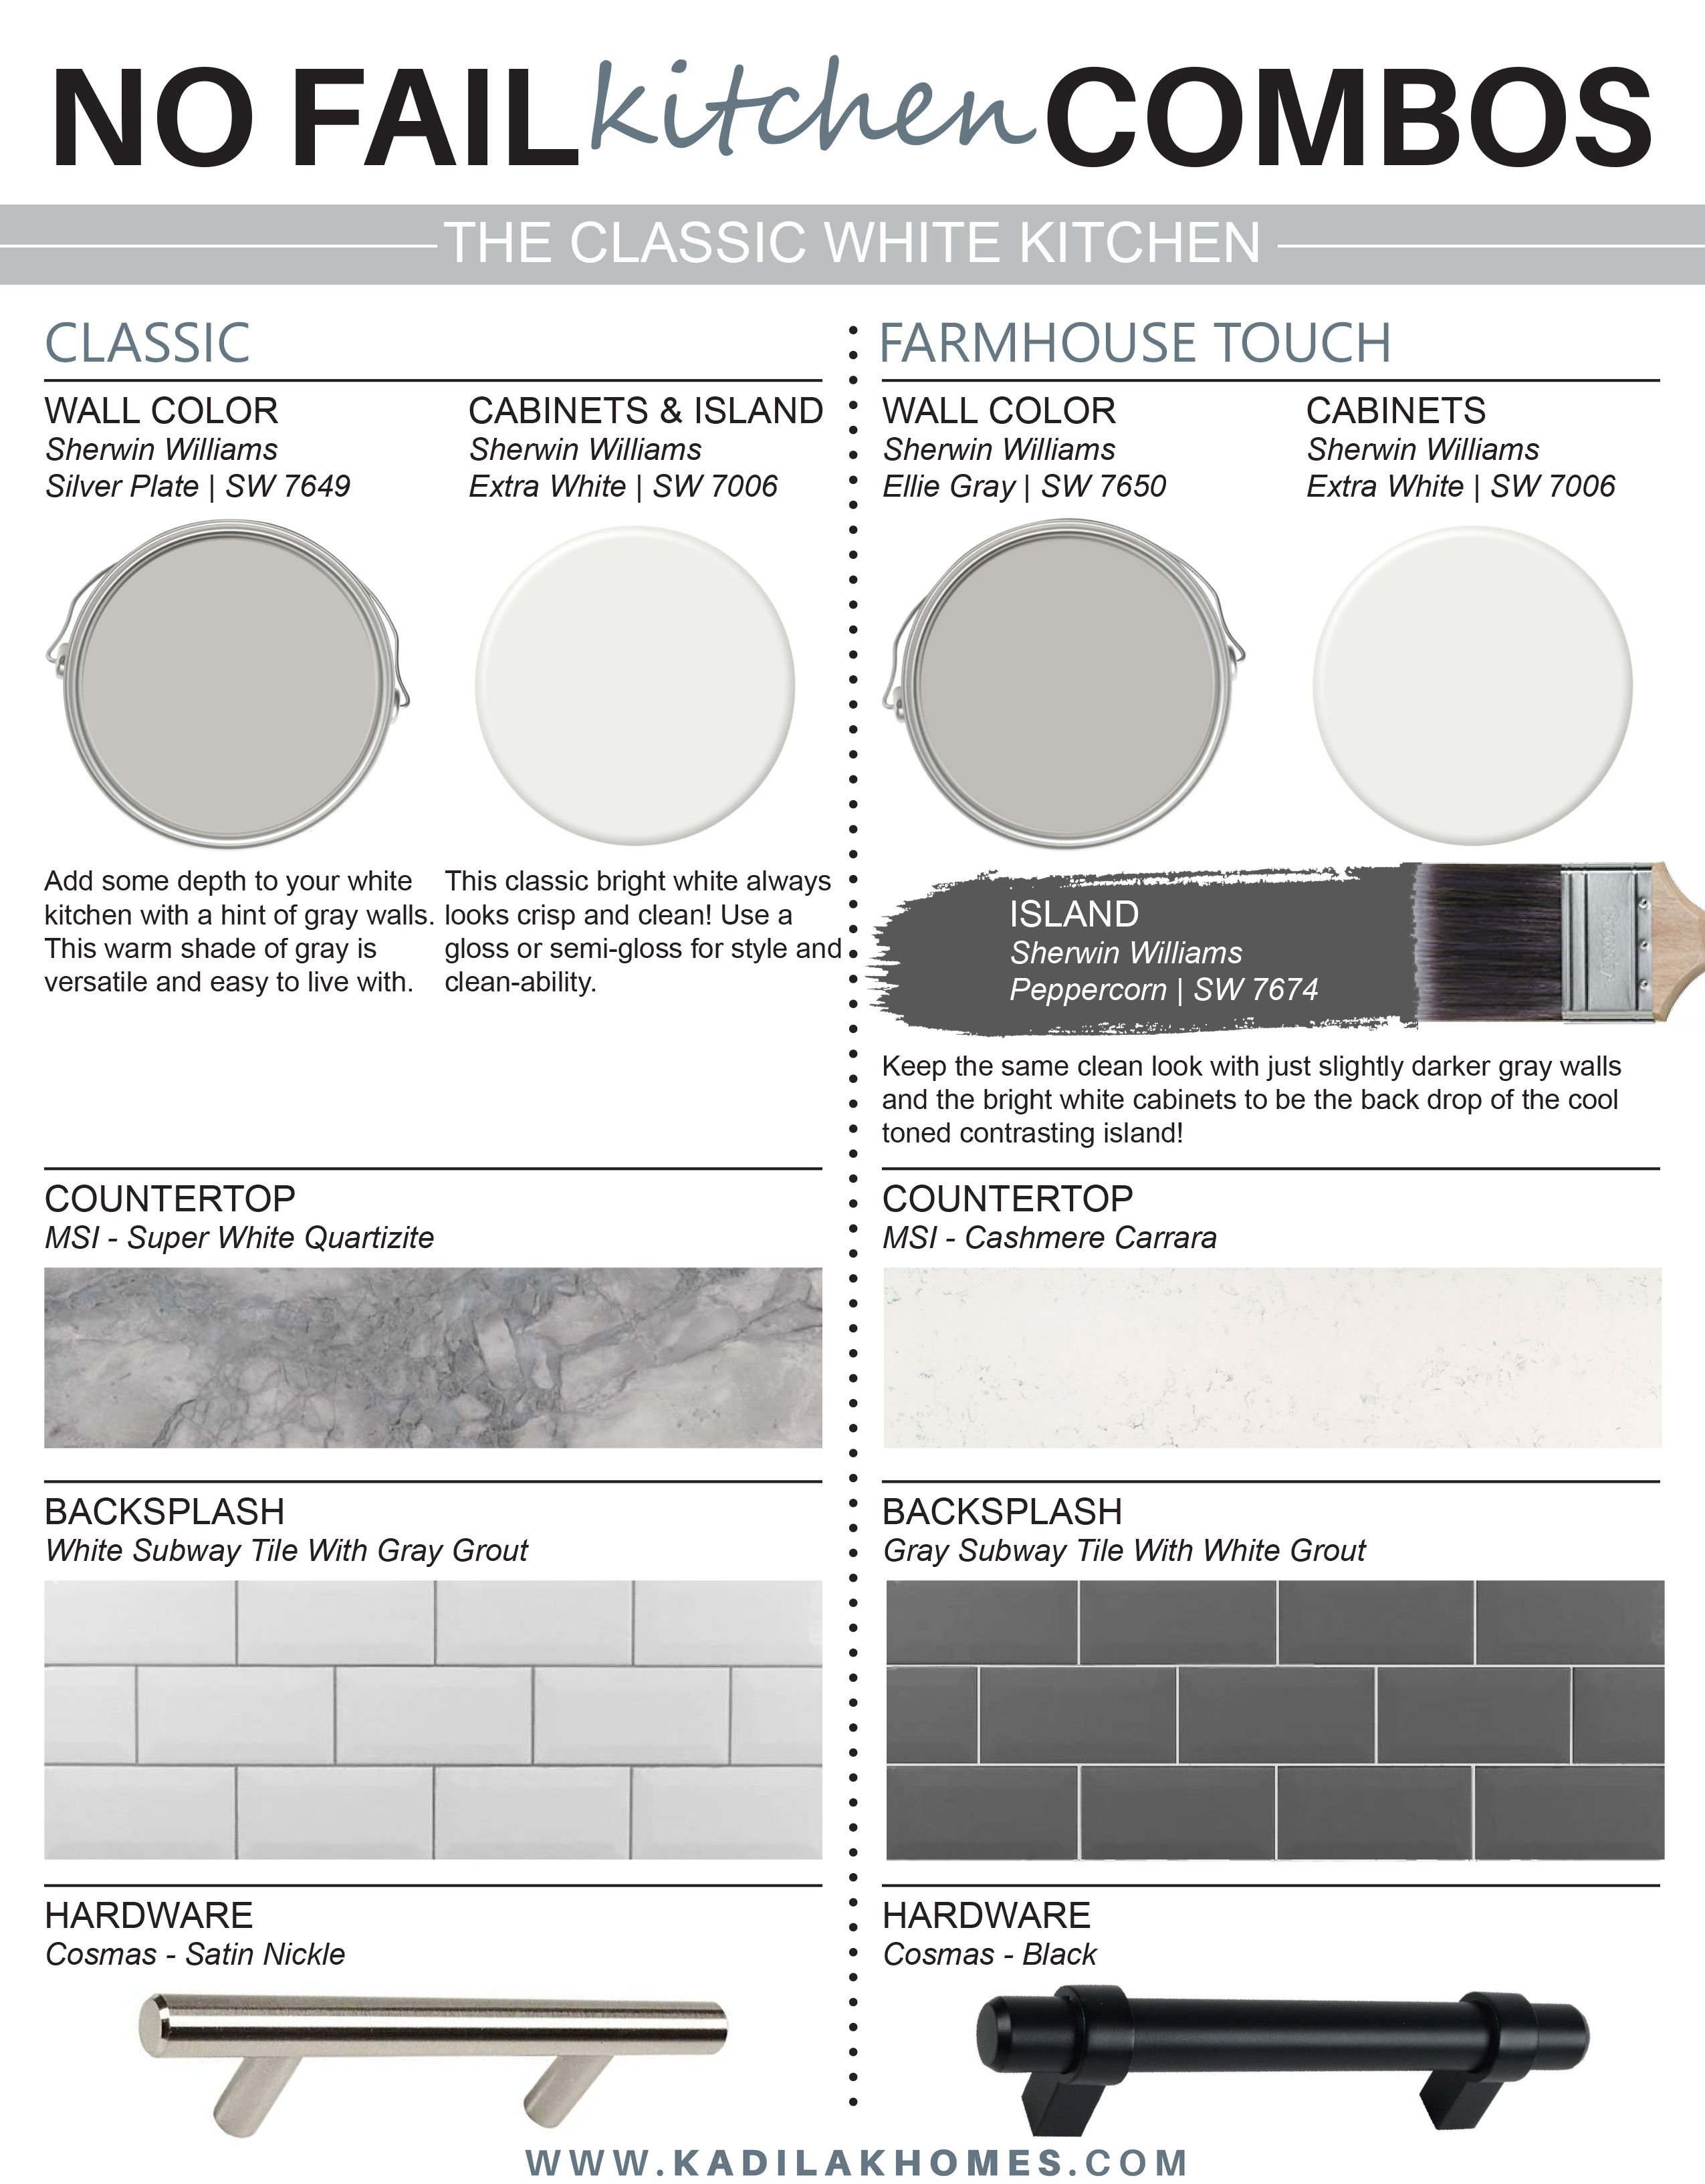 The Classic White Kitchen Design Guide by Kadilak Homes   Classic ...